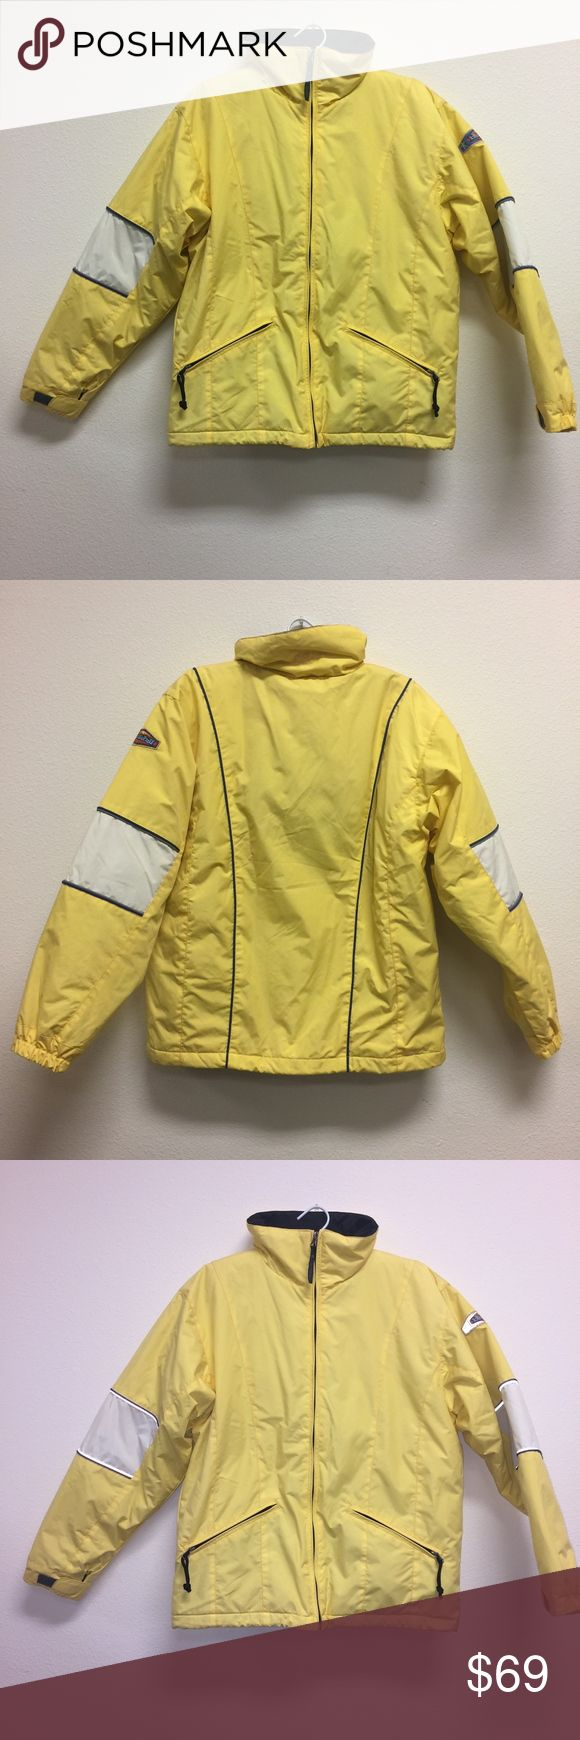 """Backhill By Burton Kids Snow Jacket Size XL kids, in excellent condition worn minimally. A few tiny blemish spots but nothing major. Includes hidden back pocket behind tag. Armpit: 23"""". Length: 26"""". Feel free to ask any questions. NO trades/ model photos sorry. Offers thru offer button only. Items ship same day M-F if purchased before 2pm PST! :) x.. Burton Jackets & Coats"""